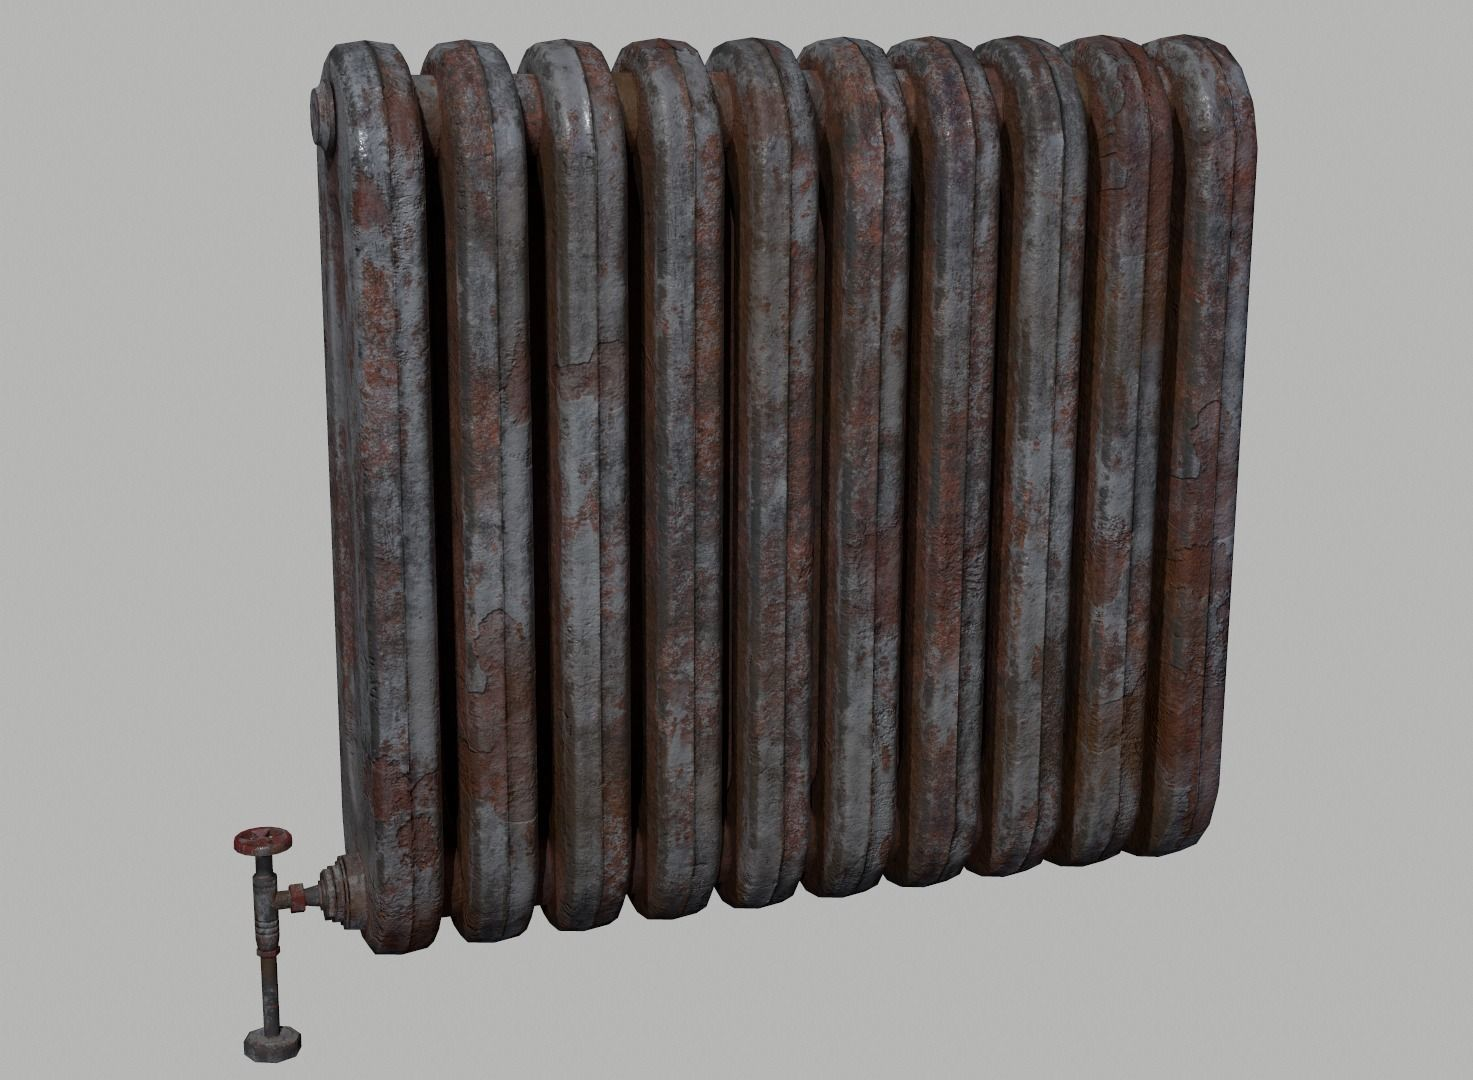 Old rusted radiator heater